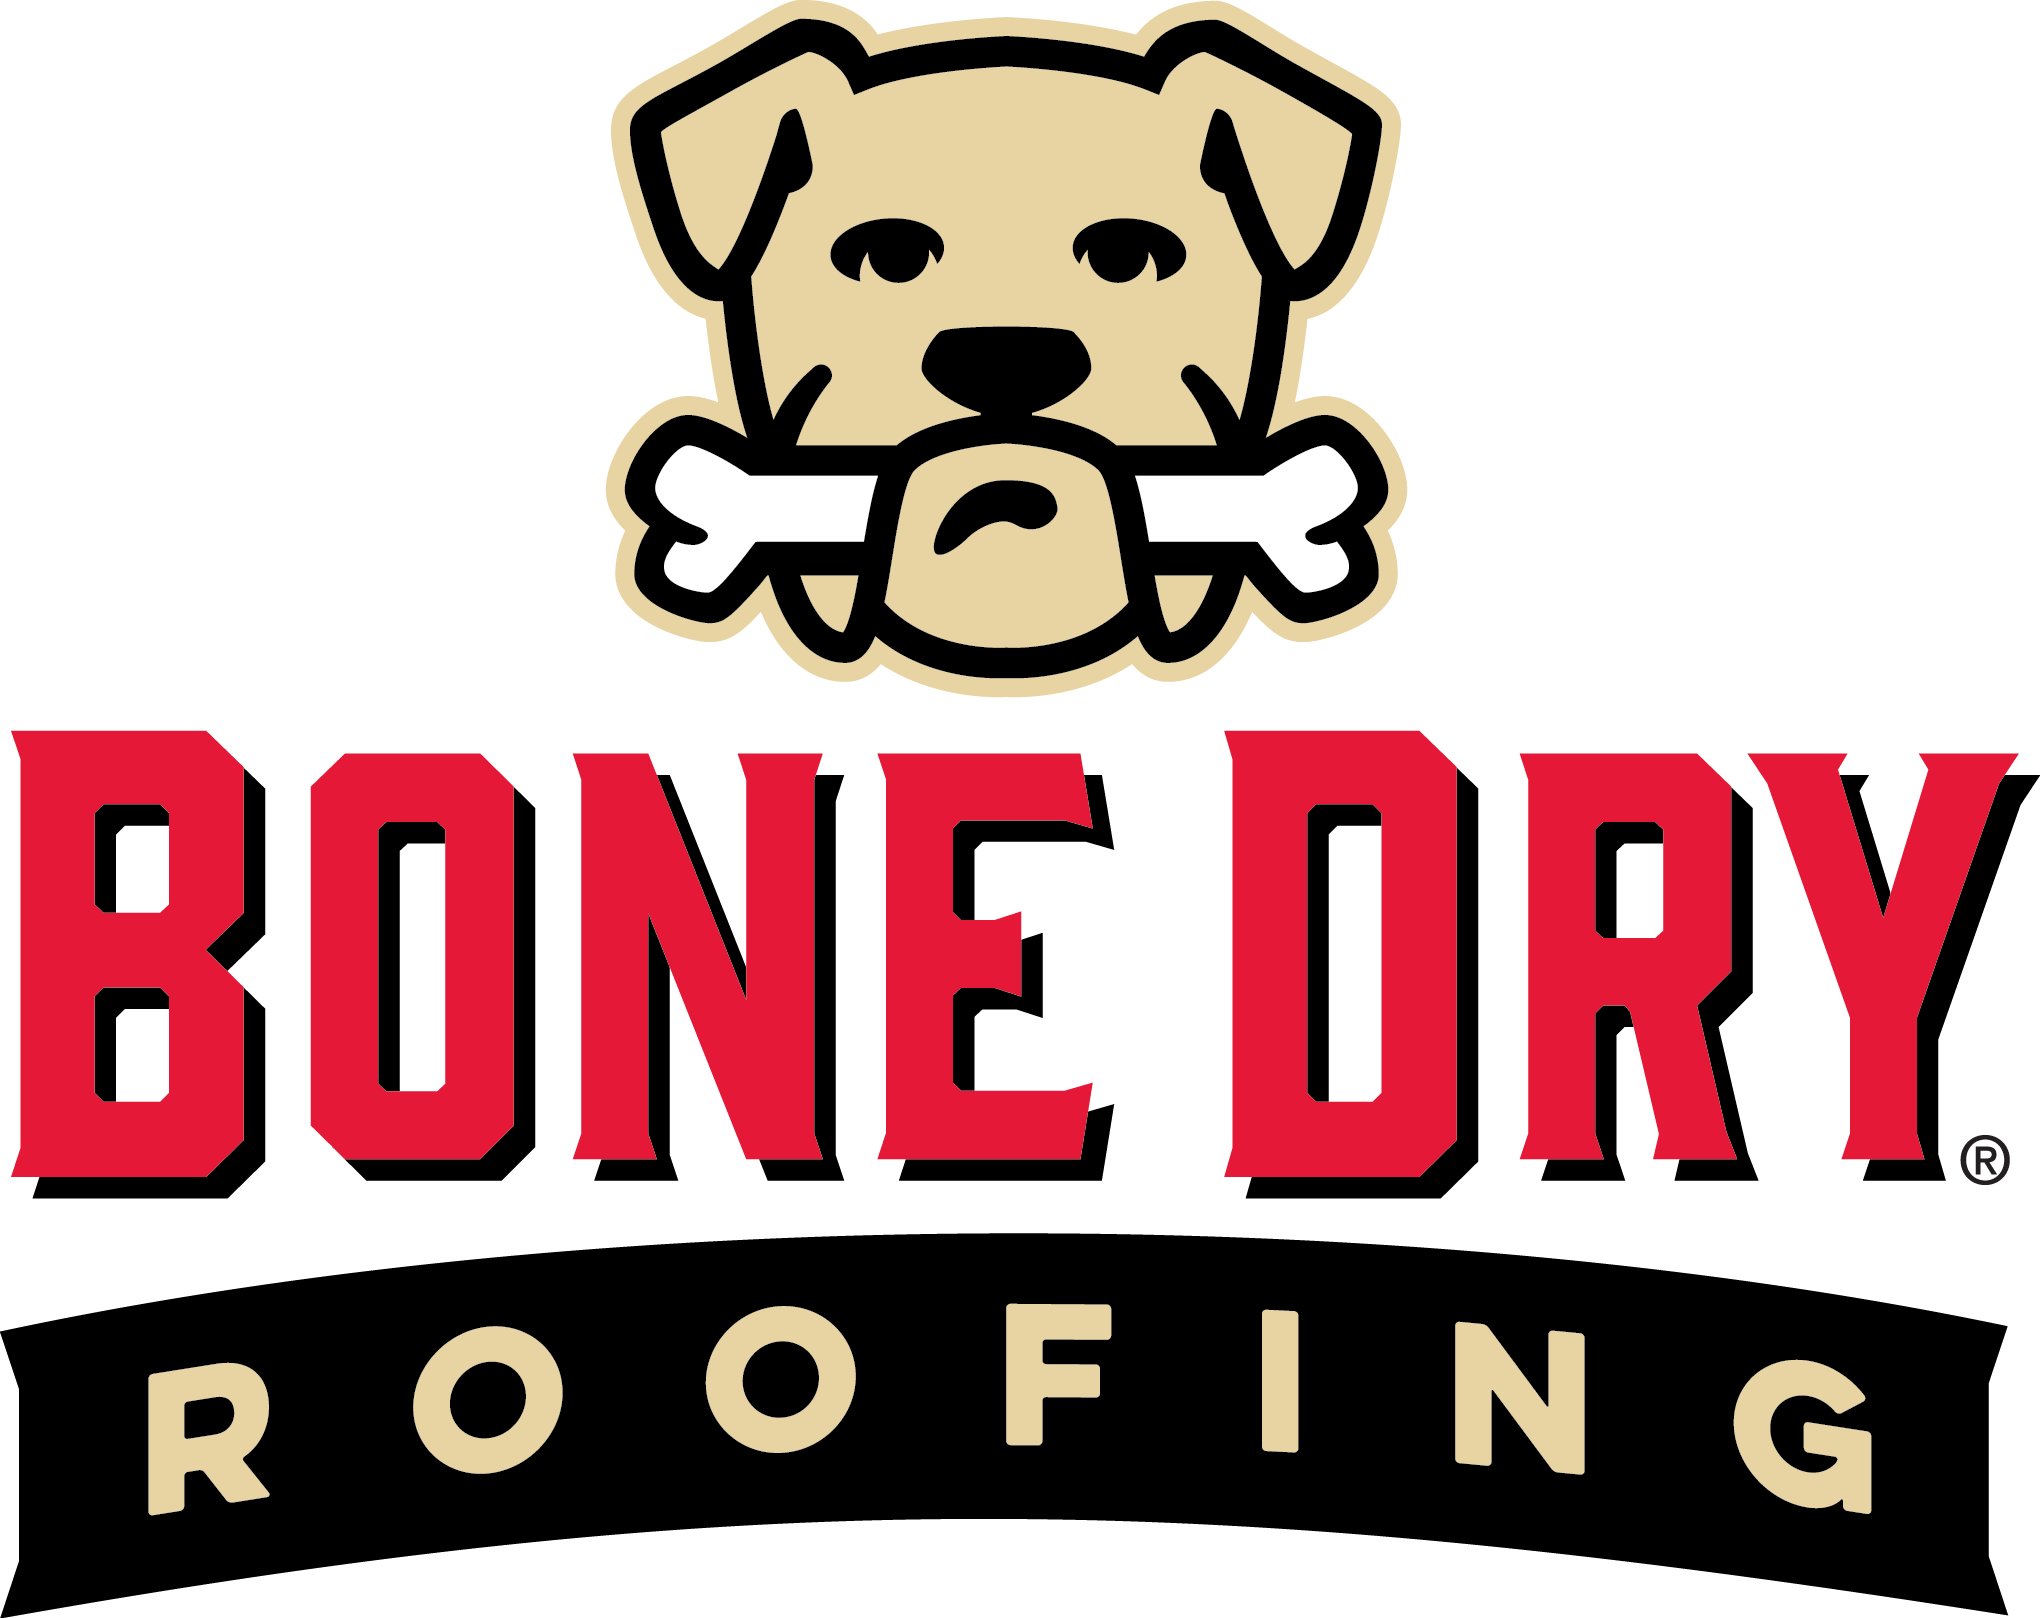 Bone Dry Roofing, Inc Announces Winner of Free Roof Giveaway in Indianapolis, IN